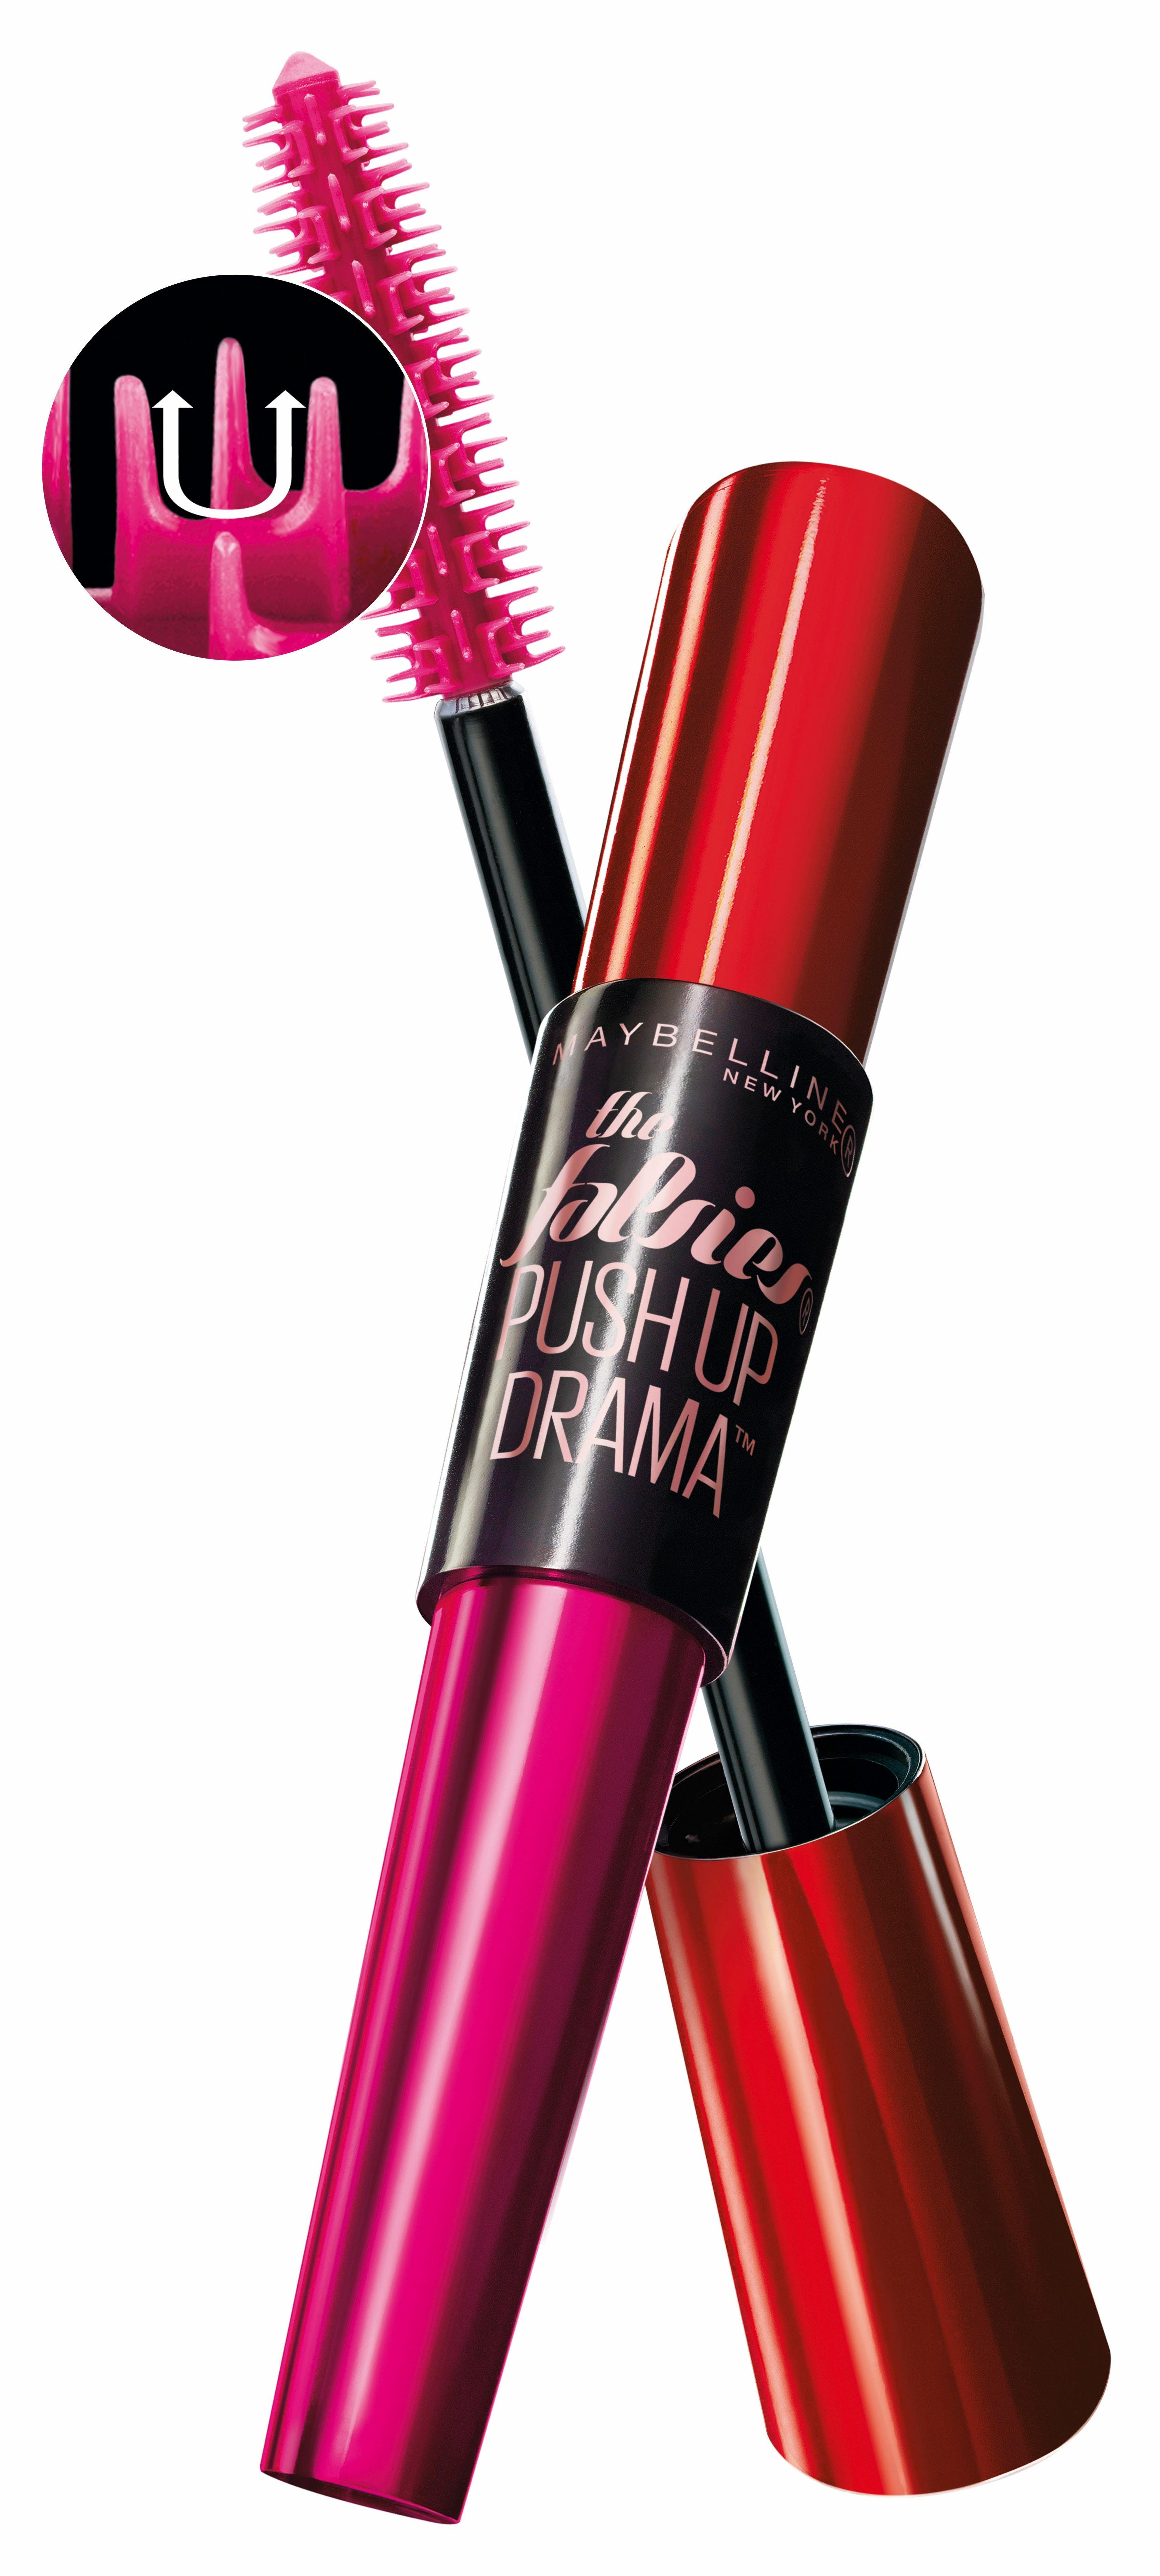 Maybelline New York, »The Falsies Push Up Drama«, Mascara